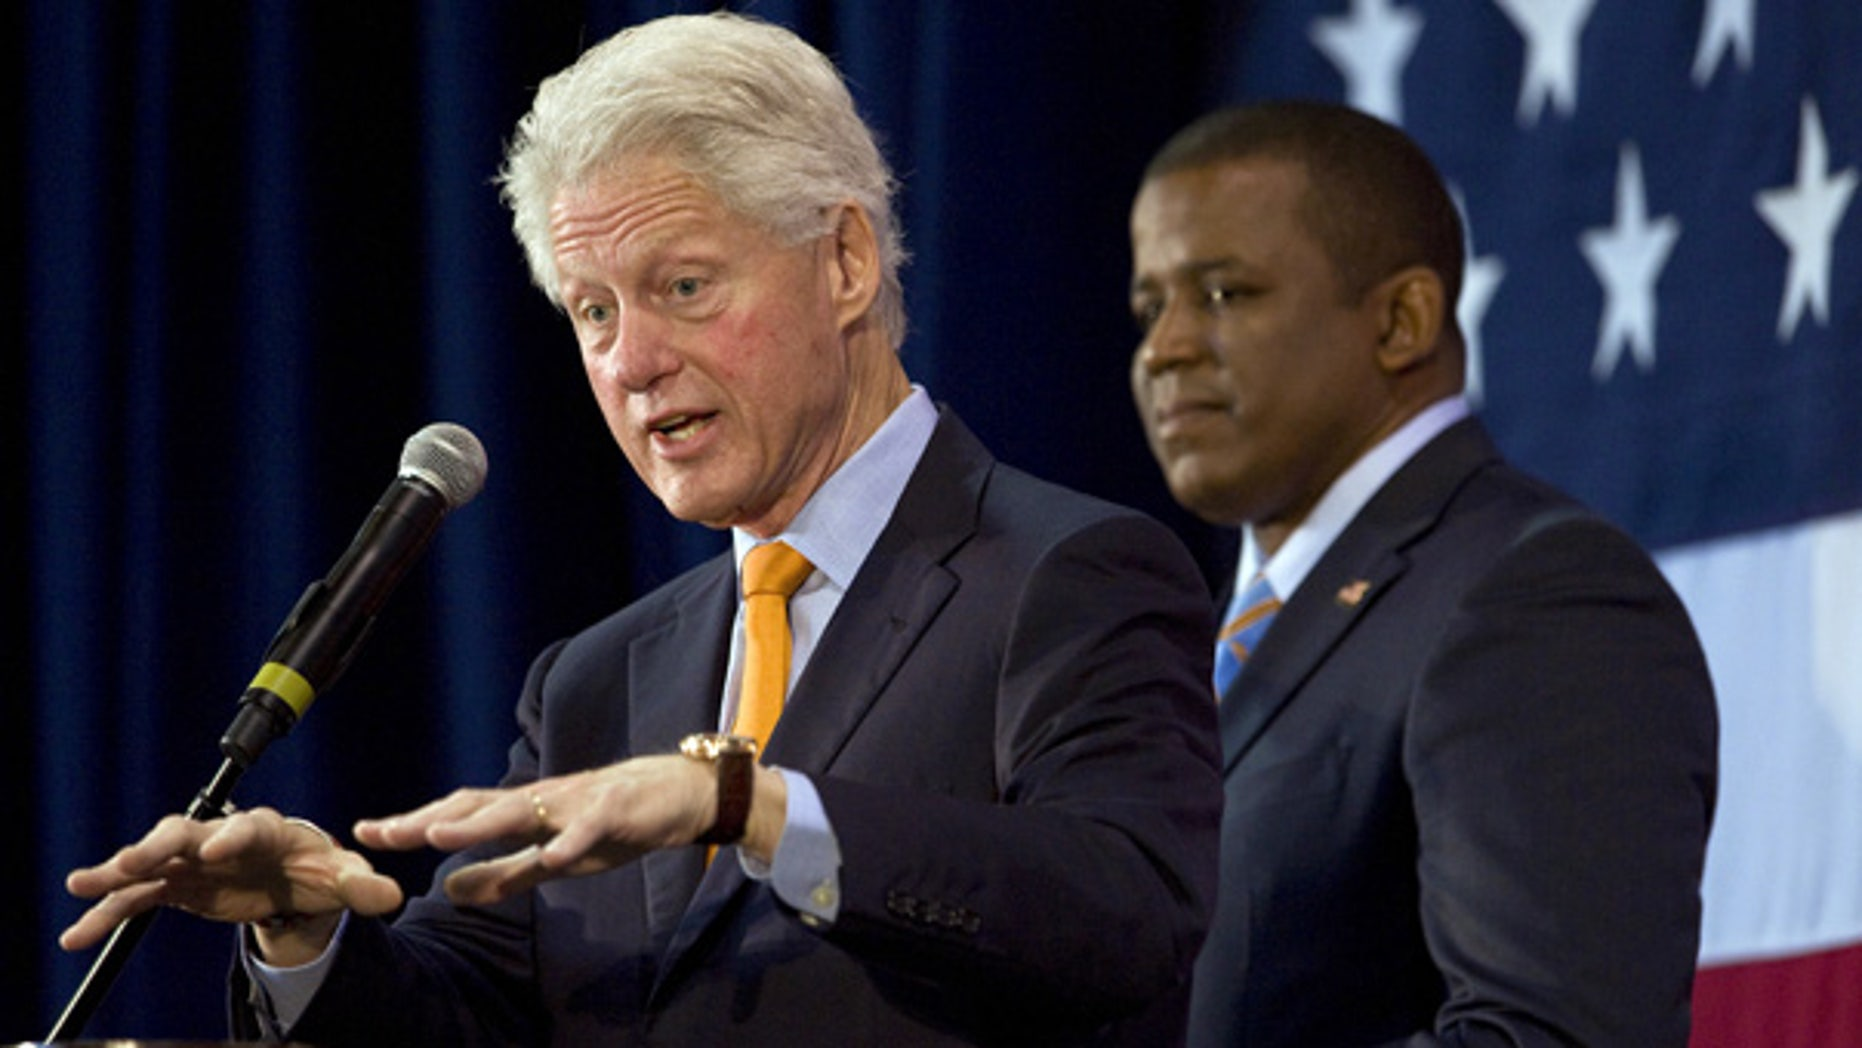 Oct. 19: Florida Democratic Senate candidate Kendrick Meek, right, listens to Former President Bill Clinton address supporters during a campaign rally in St. Petersburg.